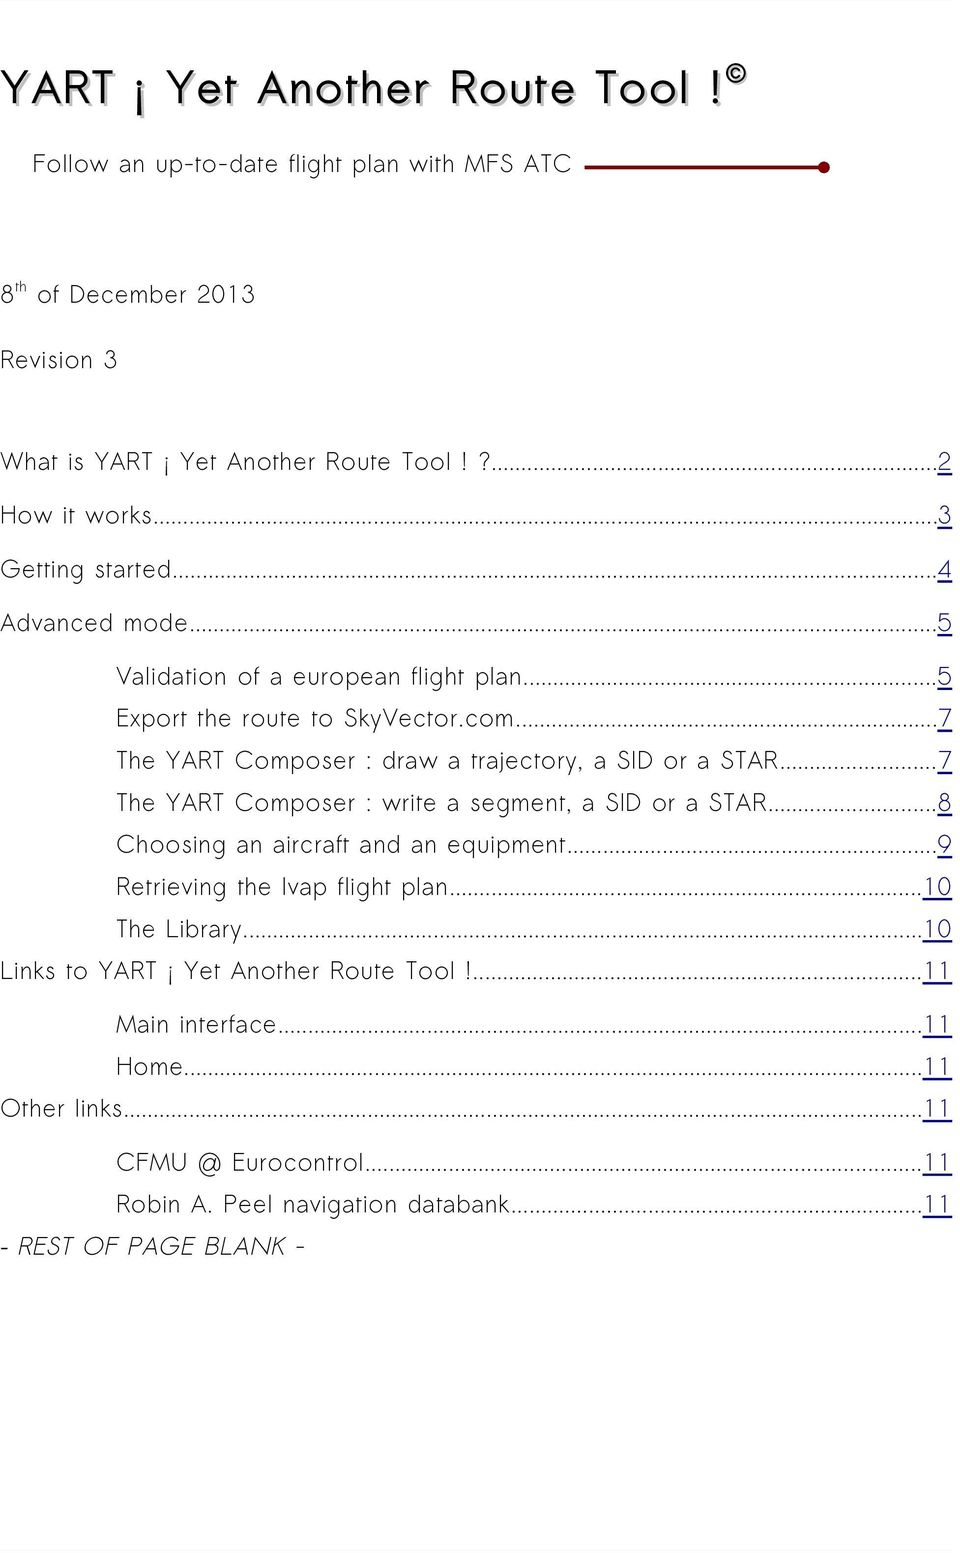 YART Yet Another Route Tool! - PDF